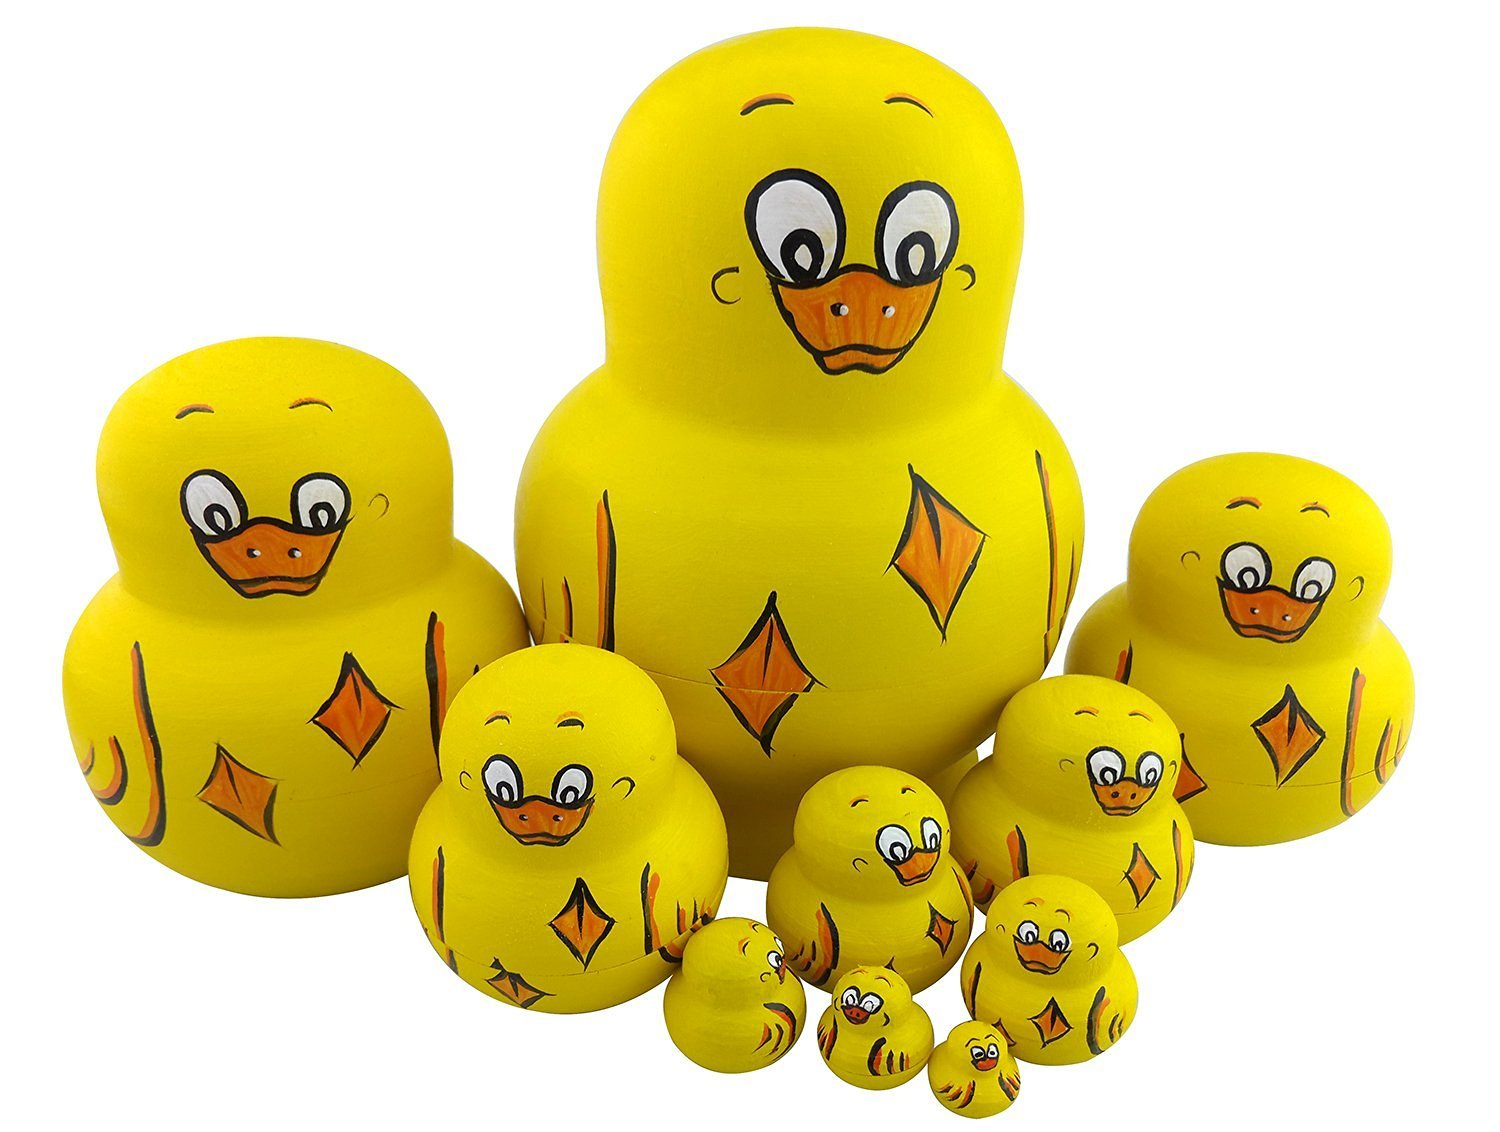 Cute Lovely Animal Yellow Duck Handmade Wooden Russian Nesting Dolls Matryoshka Dolls Set 10 Pieces For Kids Toy Christmas Gift Home Decoration